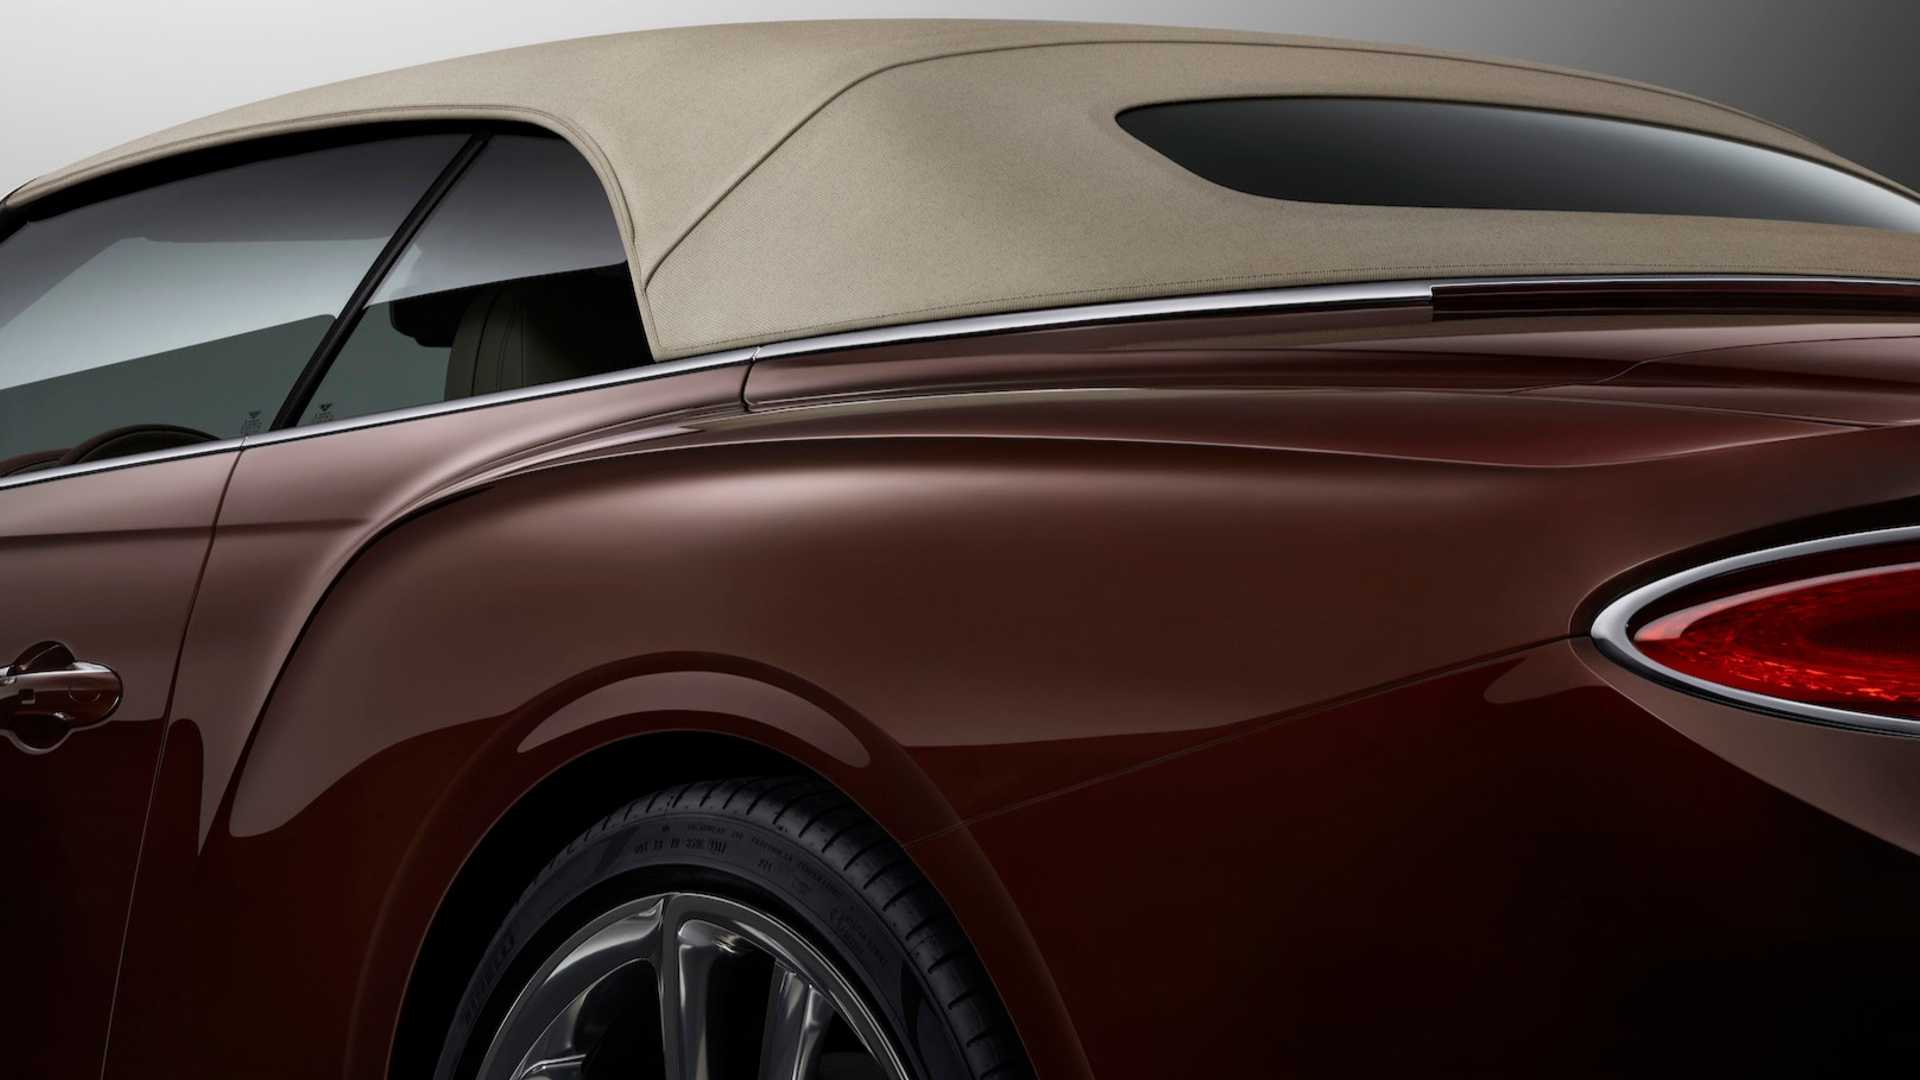 2019-bentley-continental-gt-convertible-unveiled-207-mph-luxury-droptop (20)